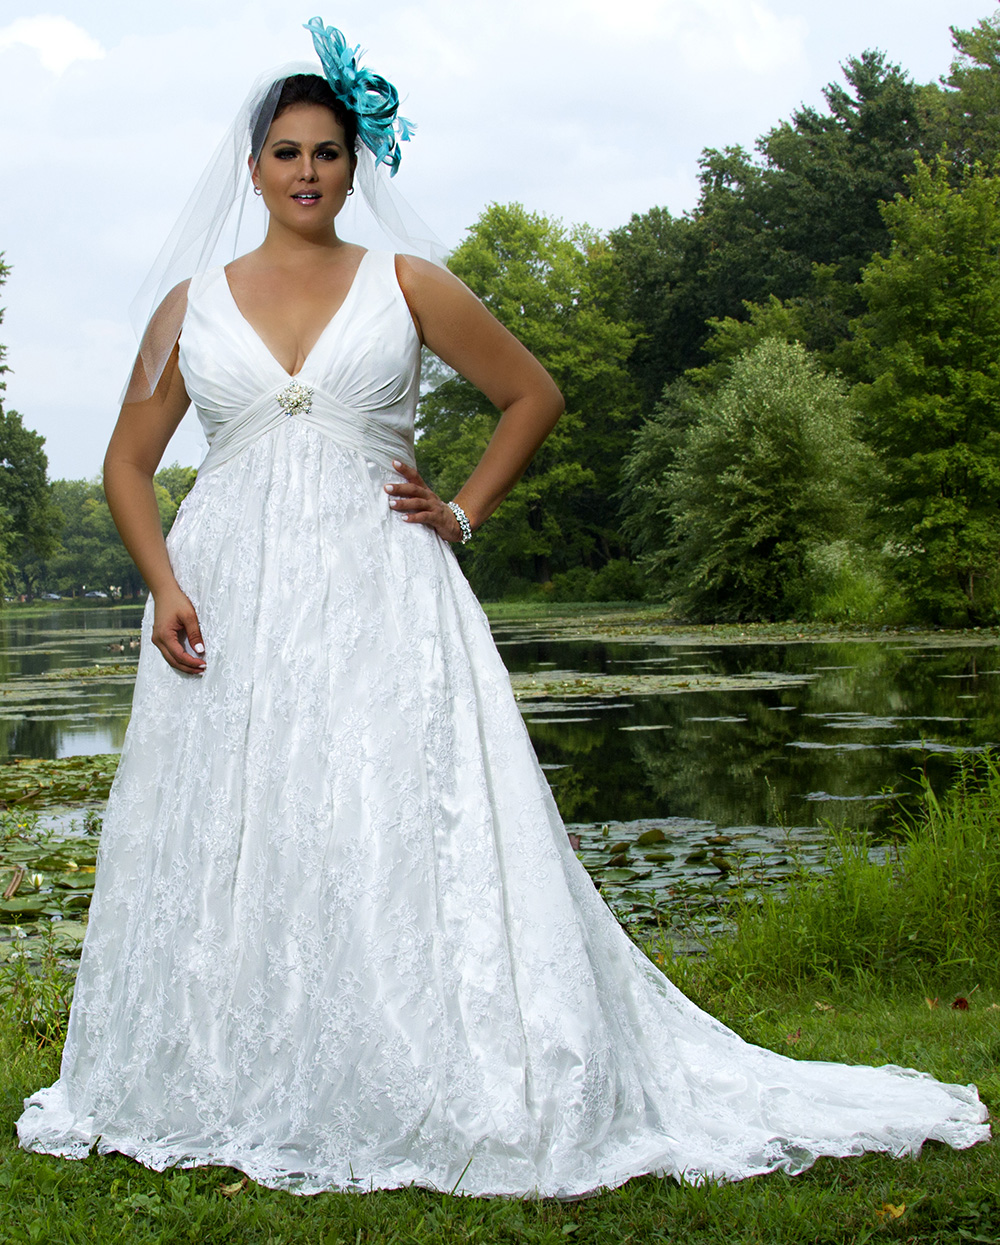 plus size non traditional wedding dresses photo - 1